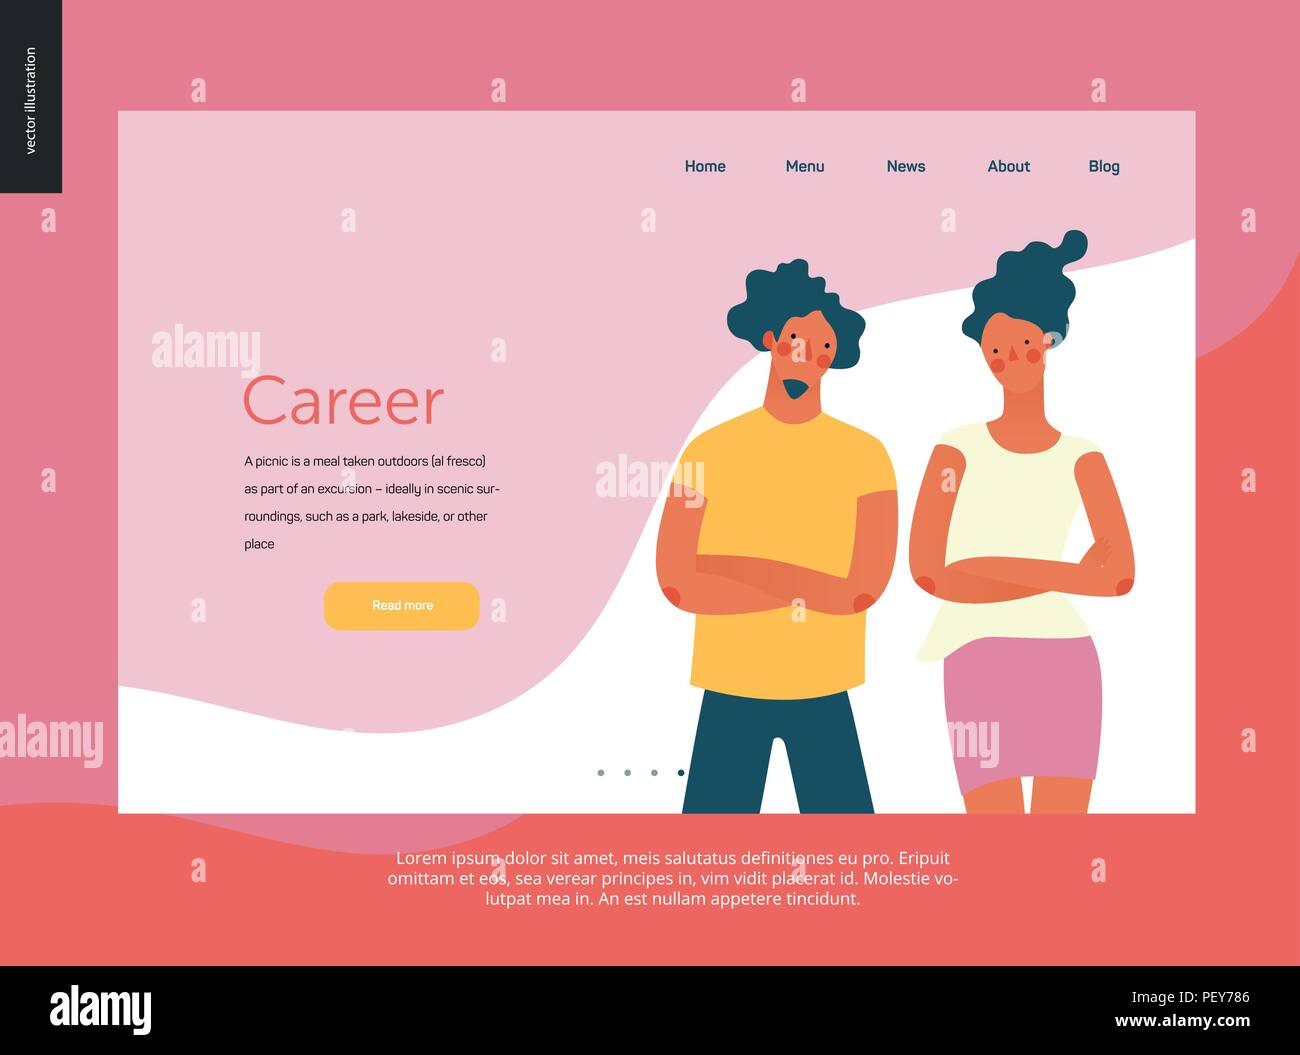 Bright people - website template Career in the the company. Flat style vector doodle illustration of serious young man and a young woman standing stan - Stock Vector